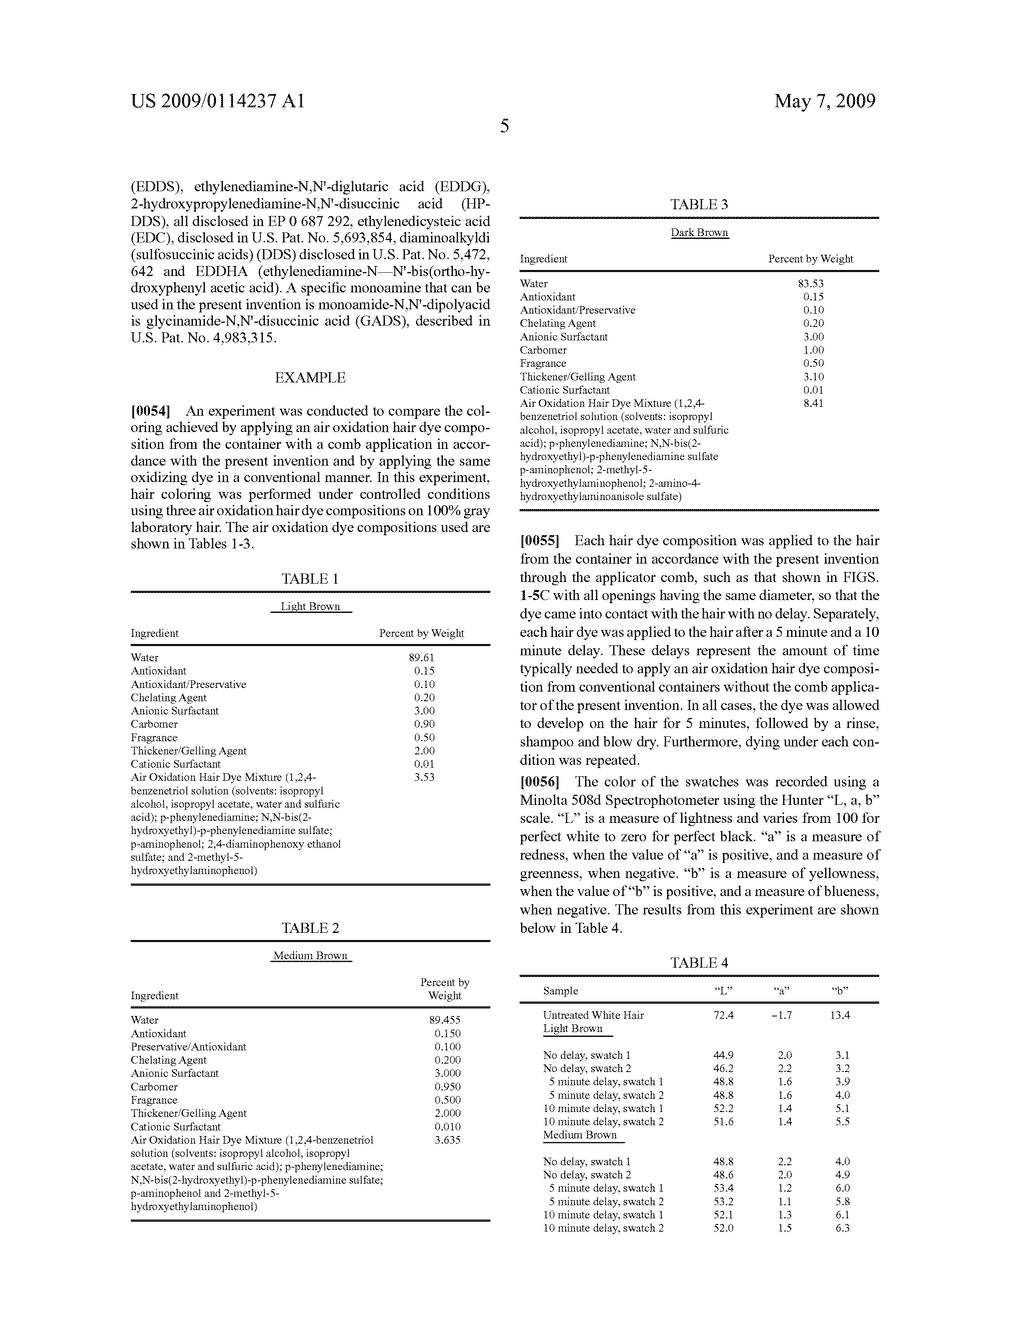 AIR OXIDATION HAIR DYE APPLICATION SYSTEM AND METHOD FOR COLORING HAIR USING THE SAME - diagram, schematic, and image 12